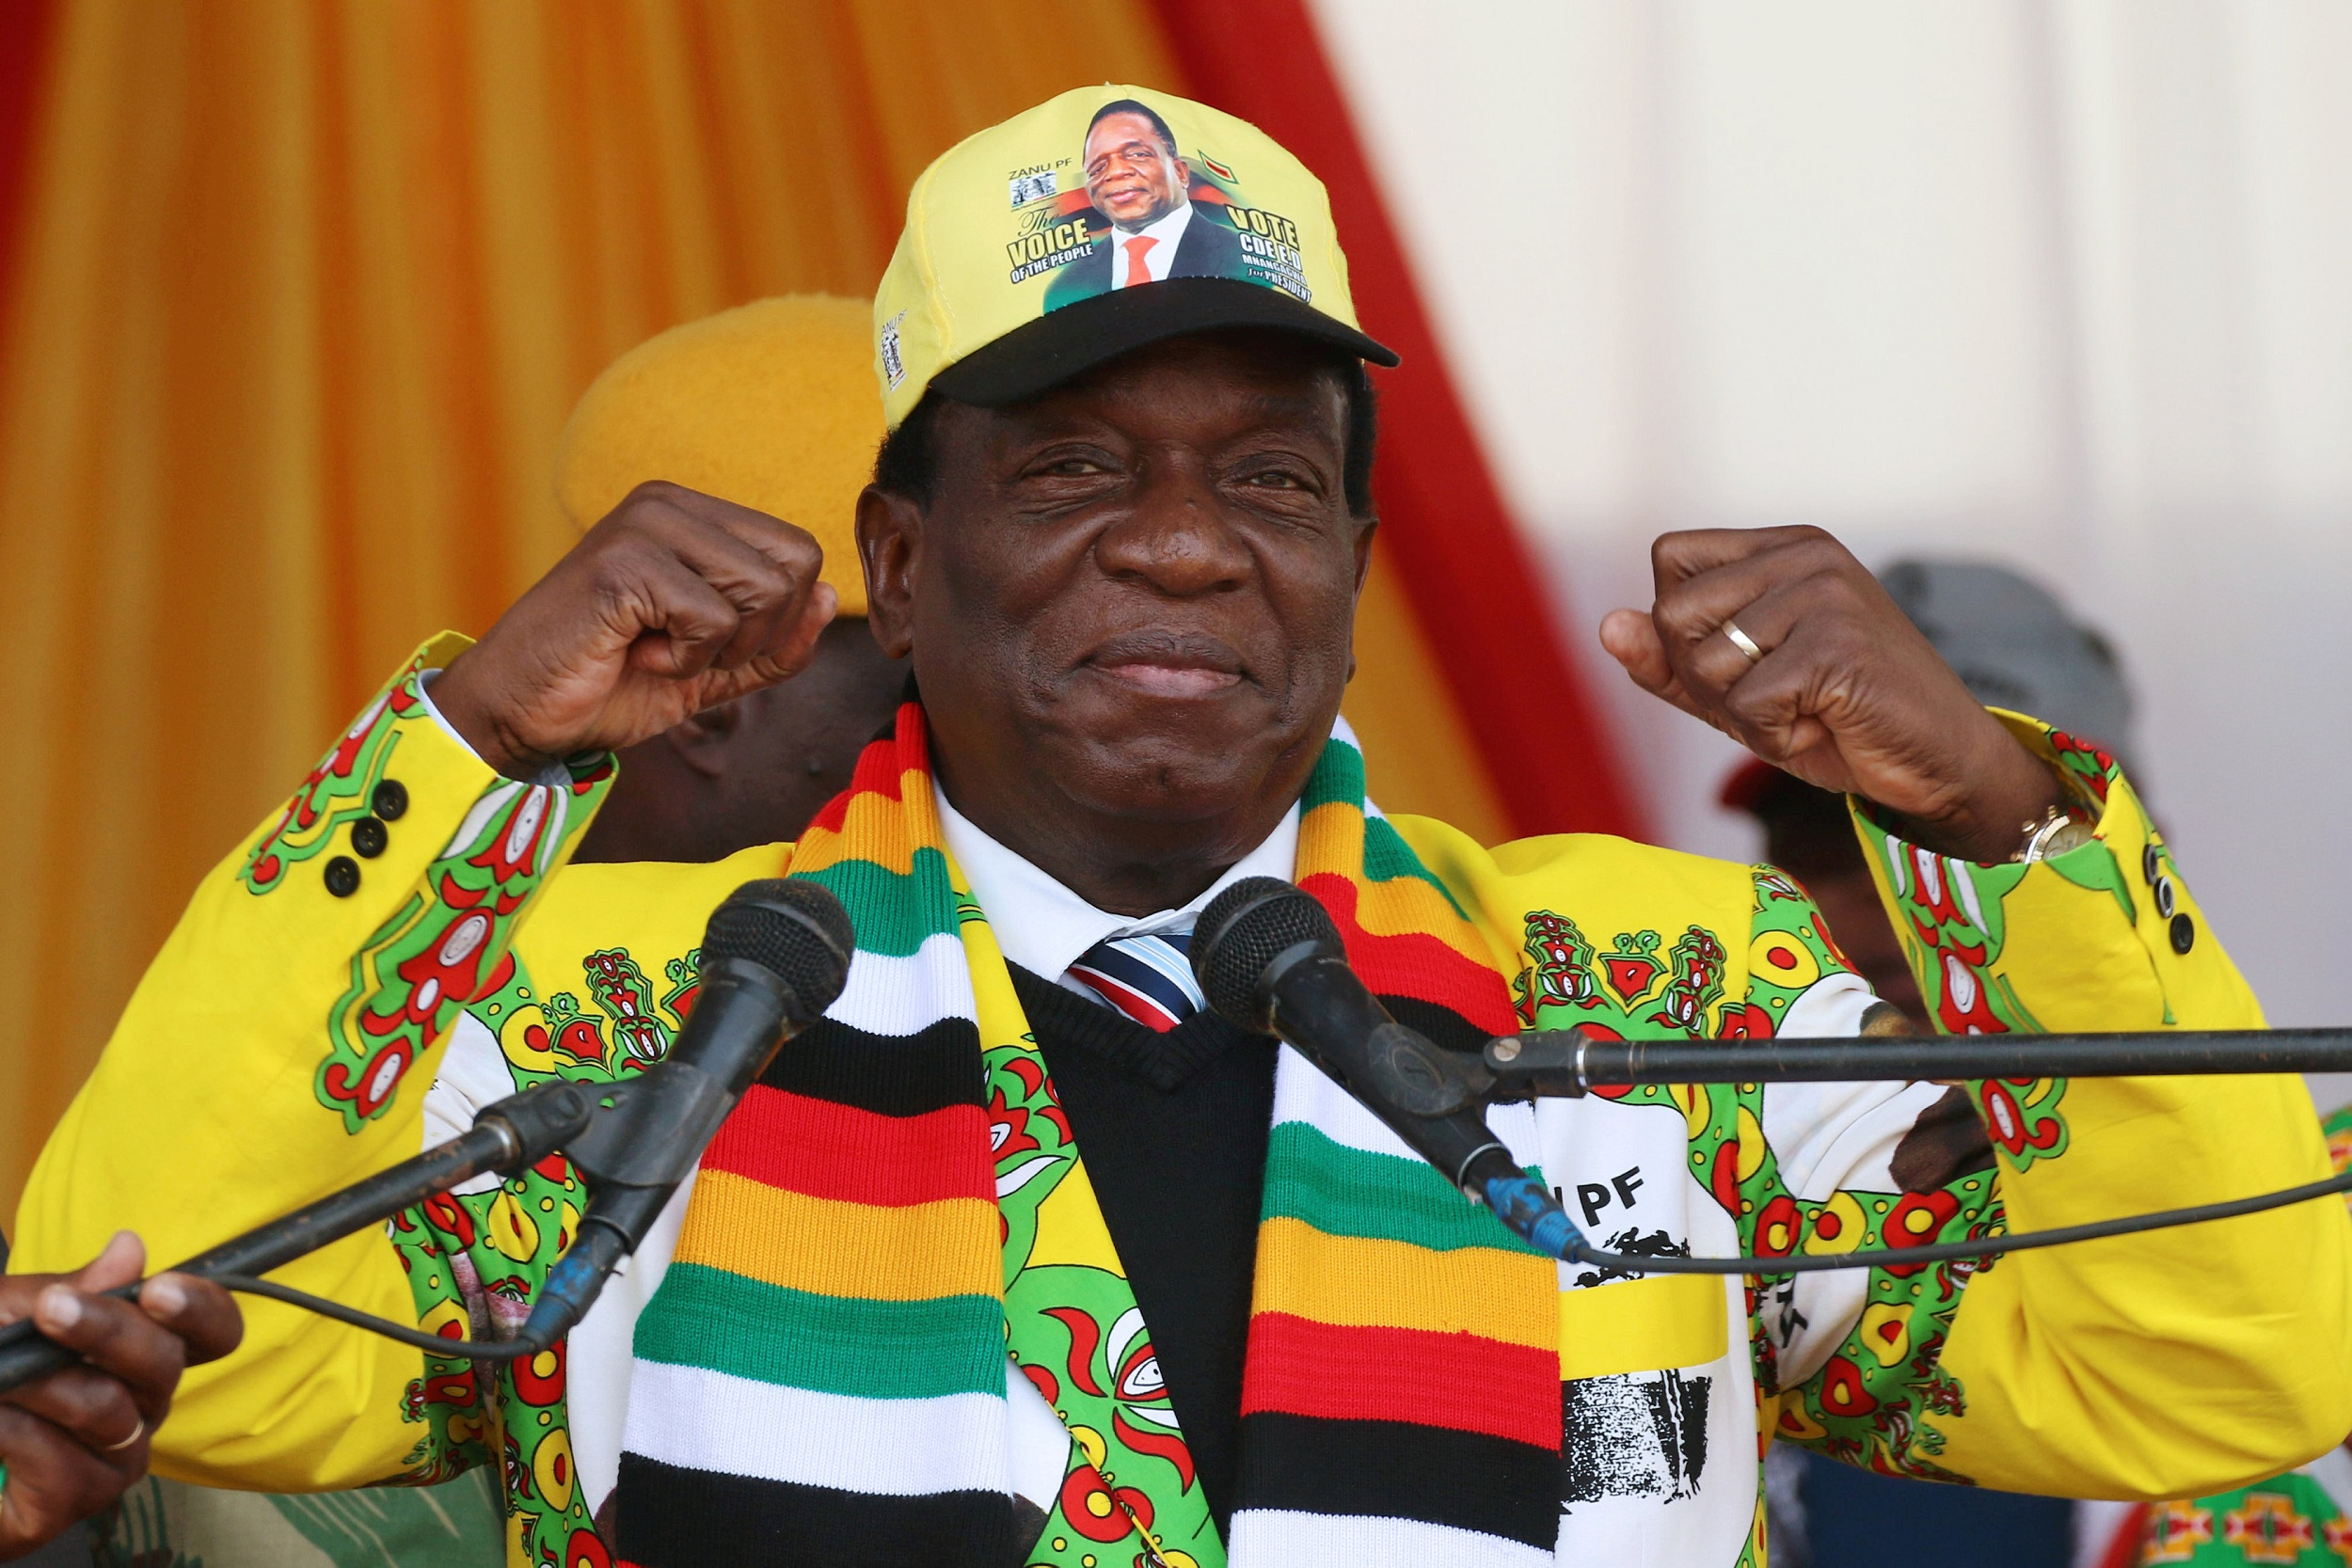 File: Emmerson Mnangagwa, Zimbabwe's president-elect will be sworn to office on August 12 in Harare.